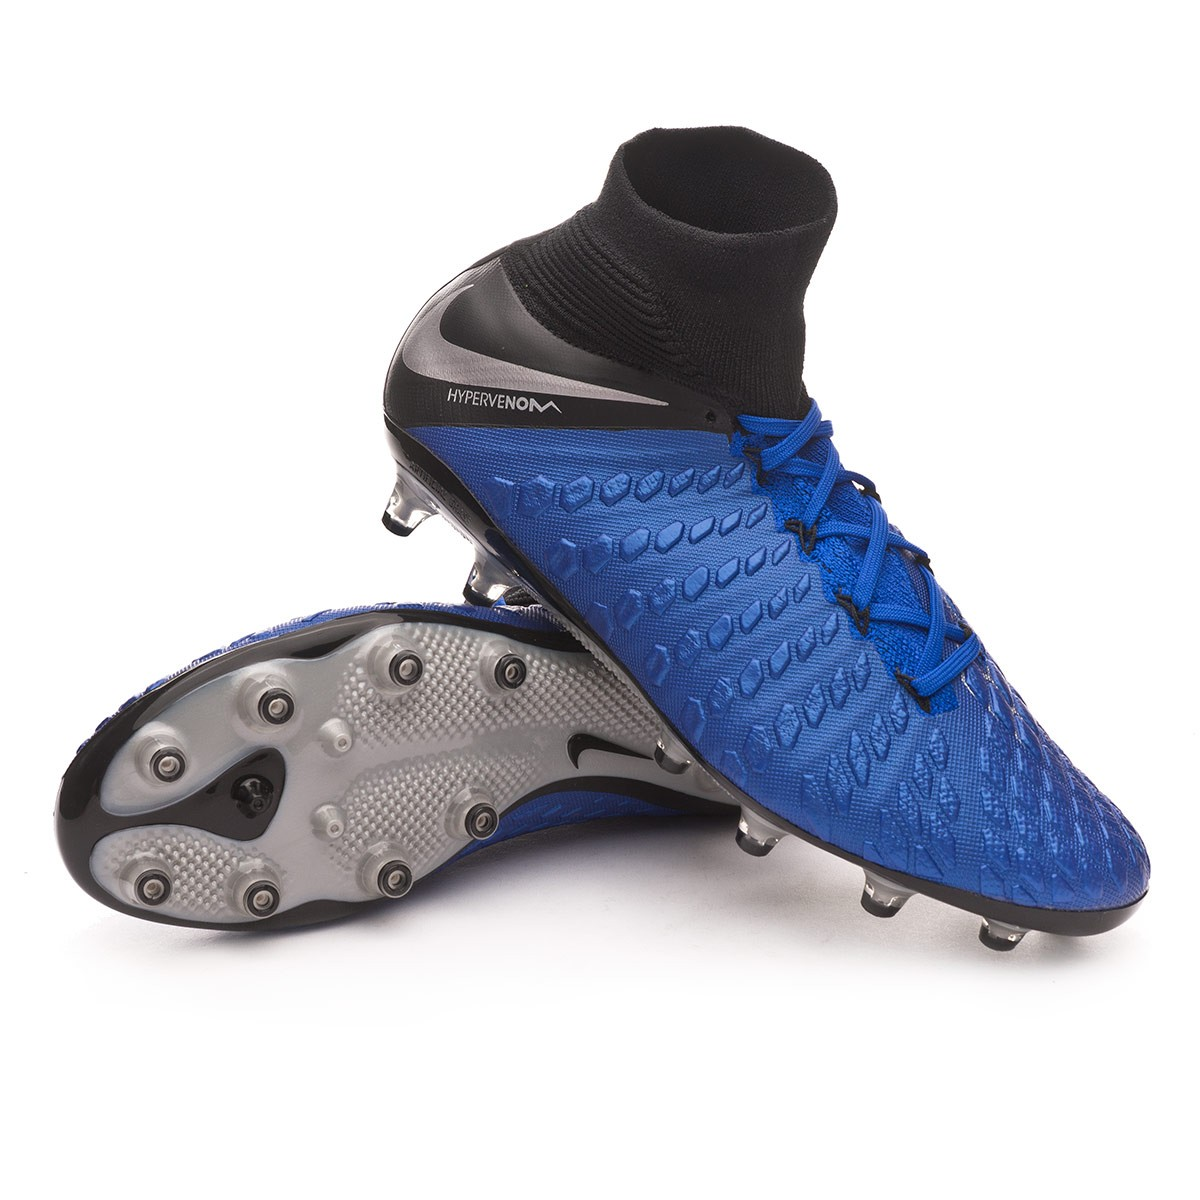 wholesale dealer af404 58644 Bota Hypervenom Phantom III Elite DF AG-Pro Racer blue-Metallic  silver-Black-Volt